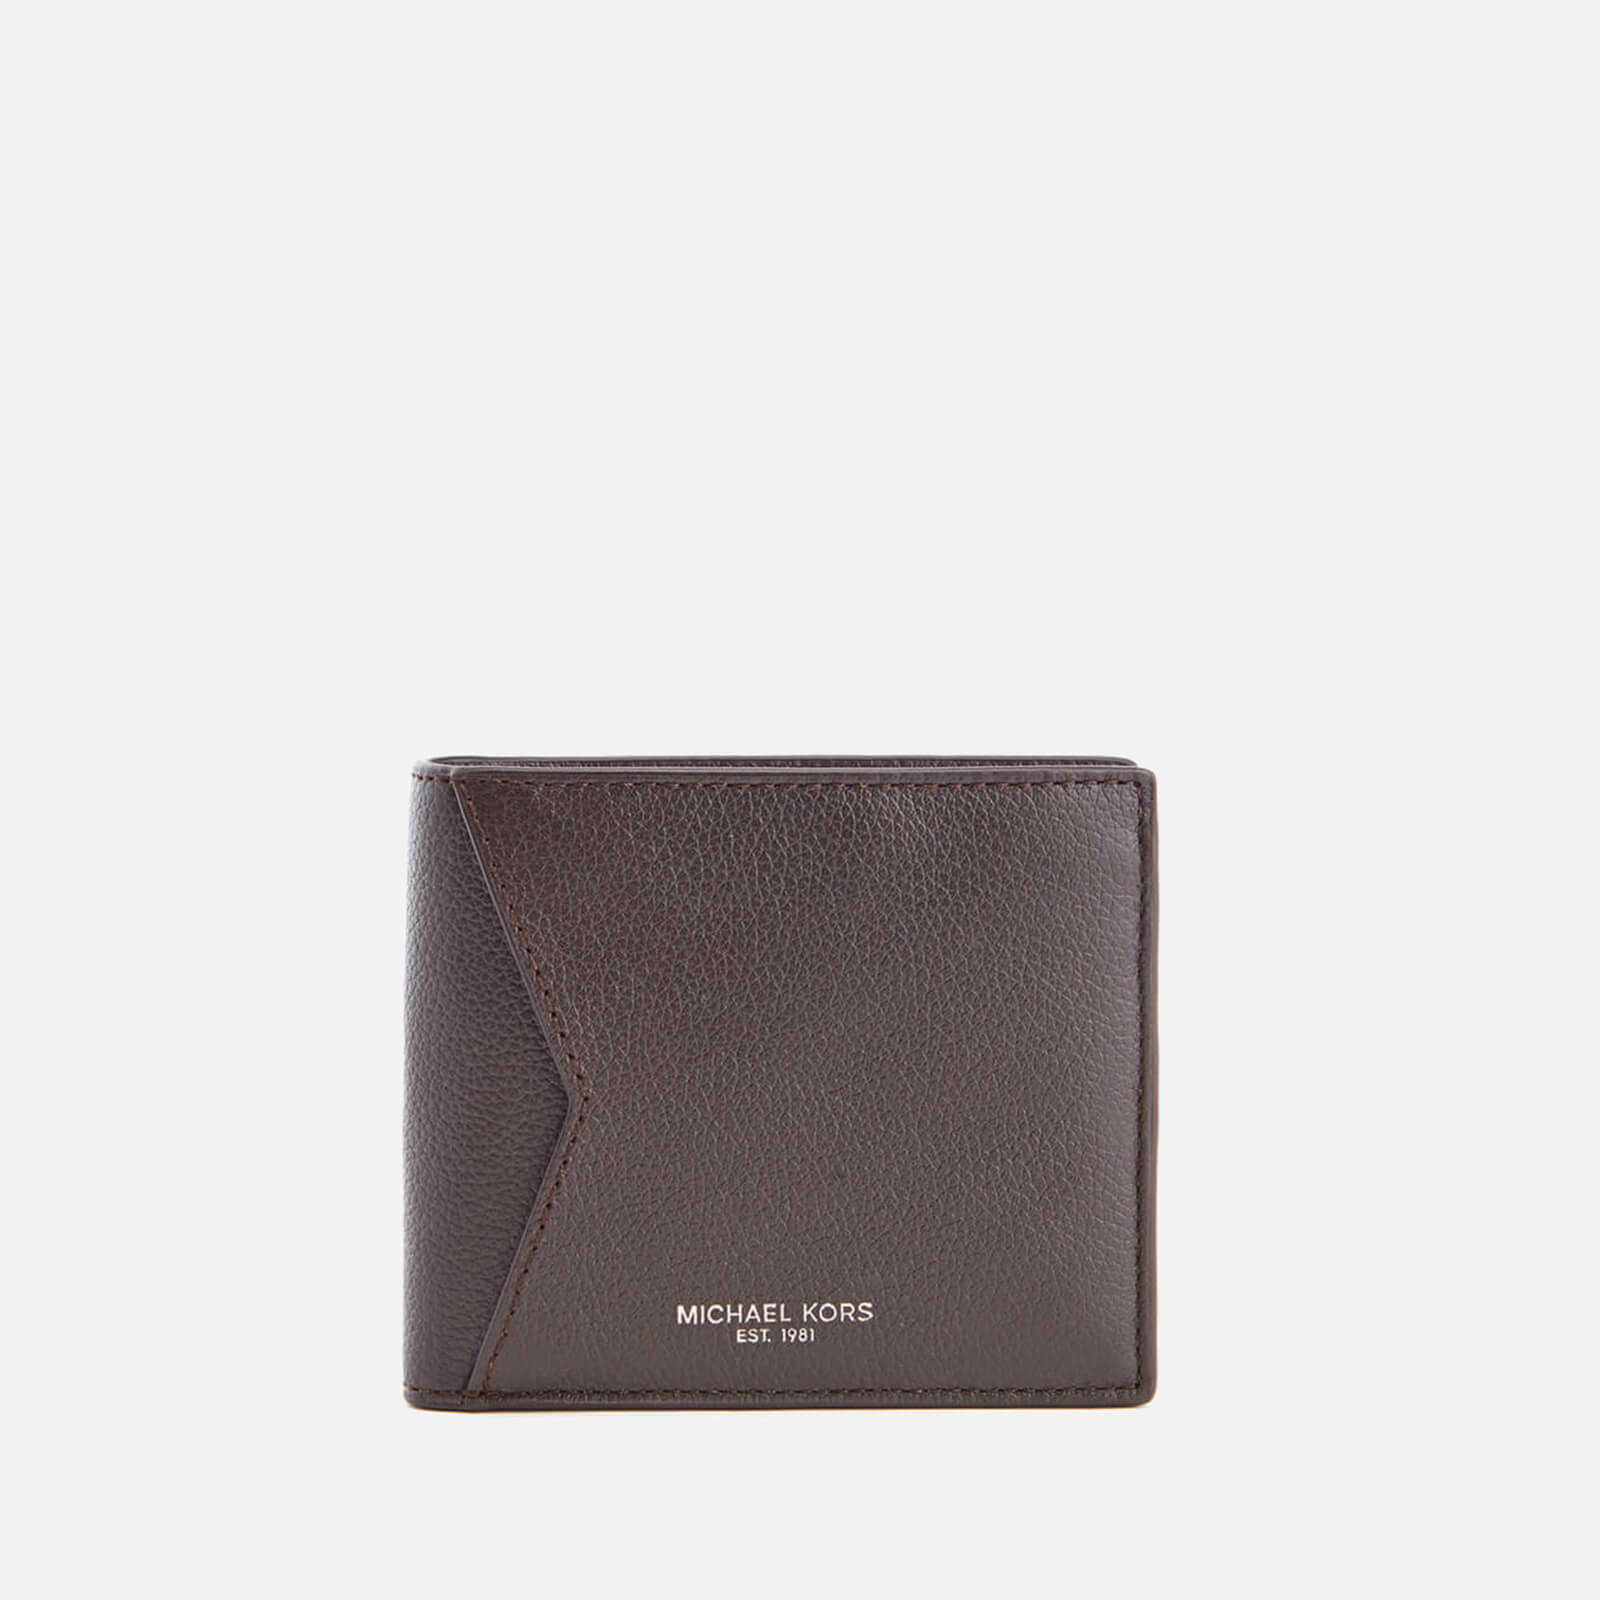 4be3c0036dc00 Michael Kors Men s Bryant Billfold Wallet with Coin Pocket - Brown ...